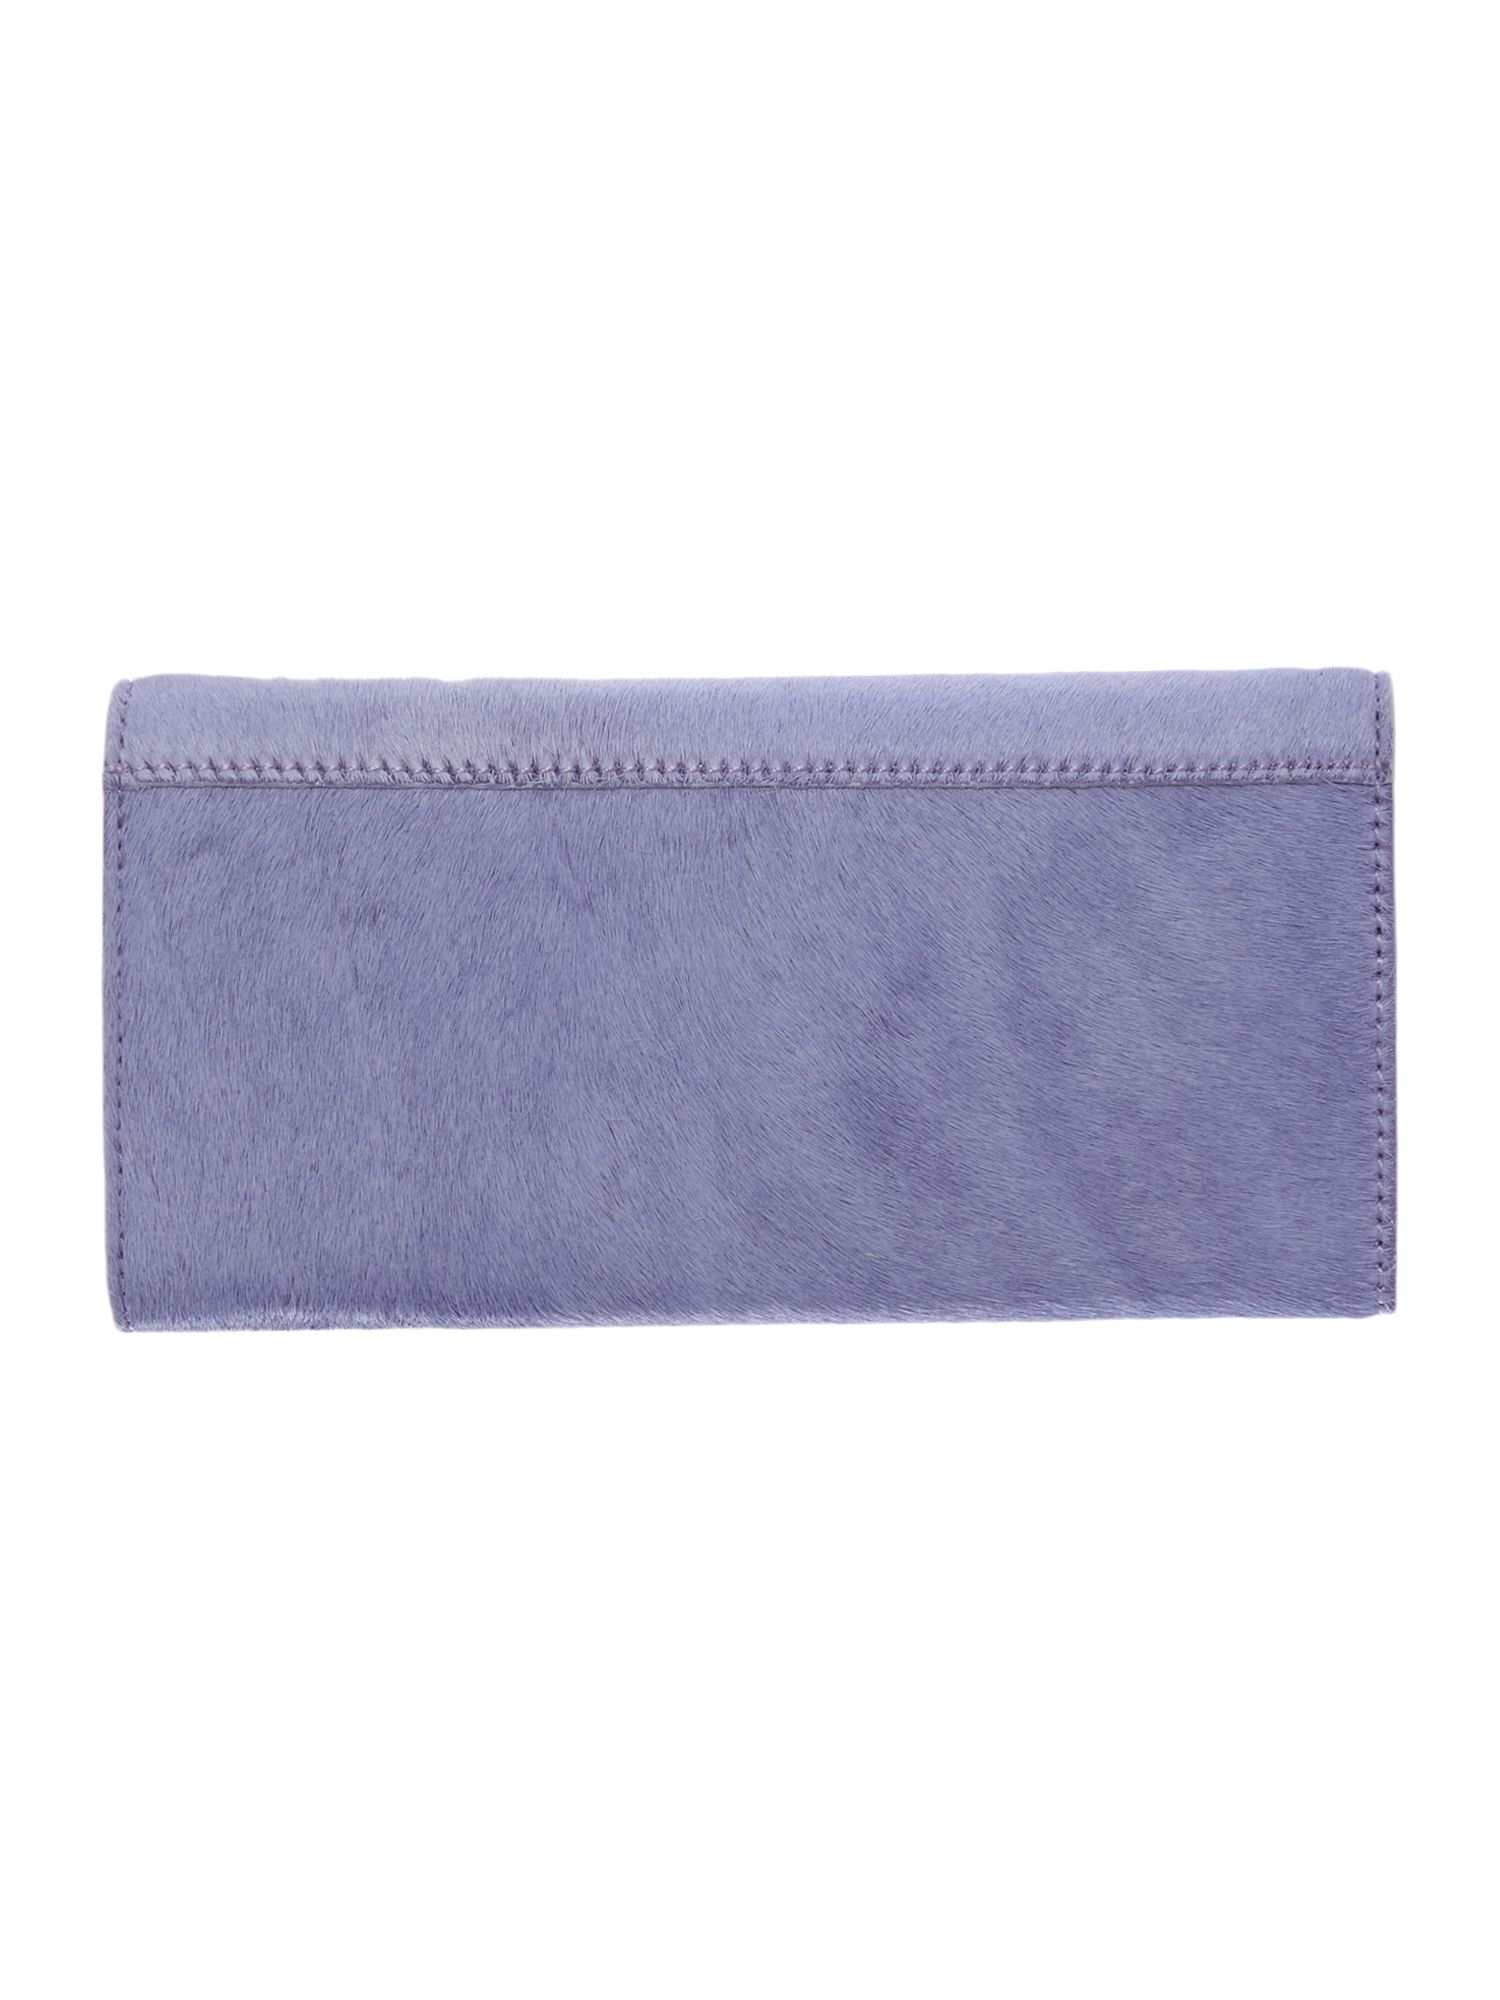 Purple large pony hair flapover purse